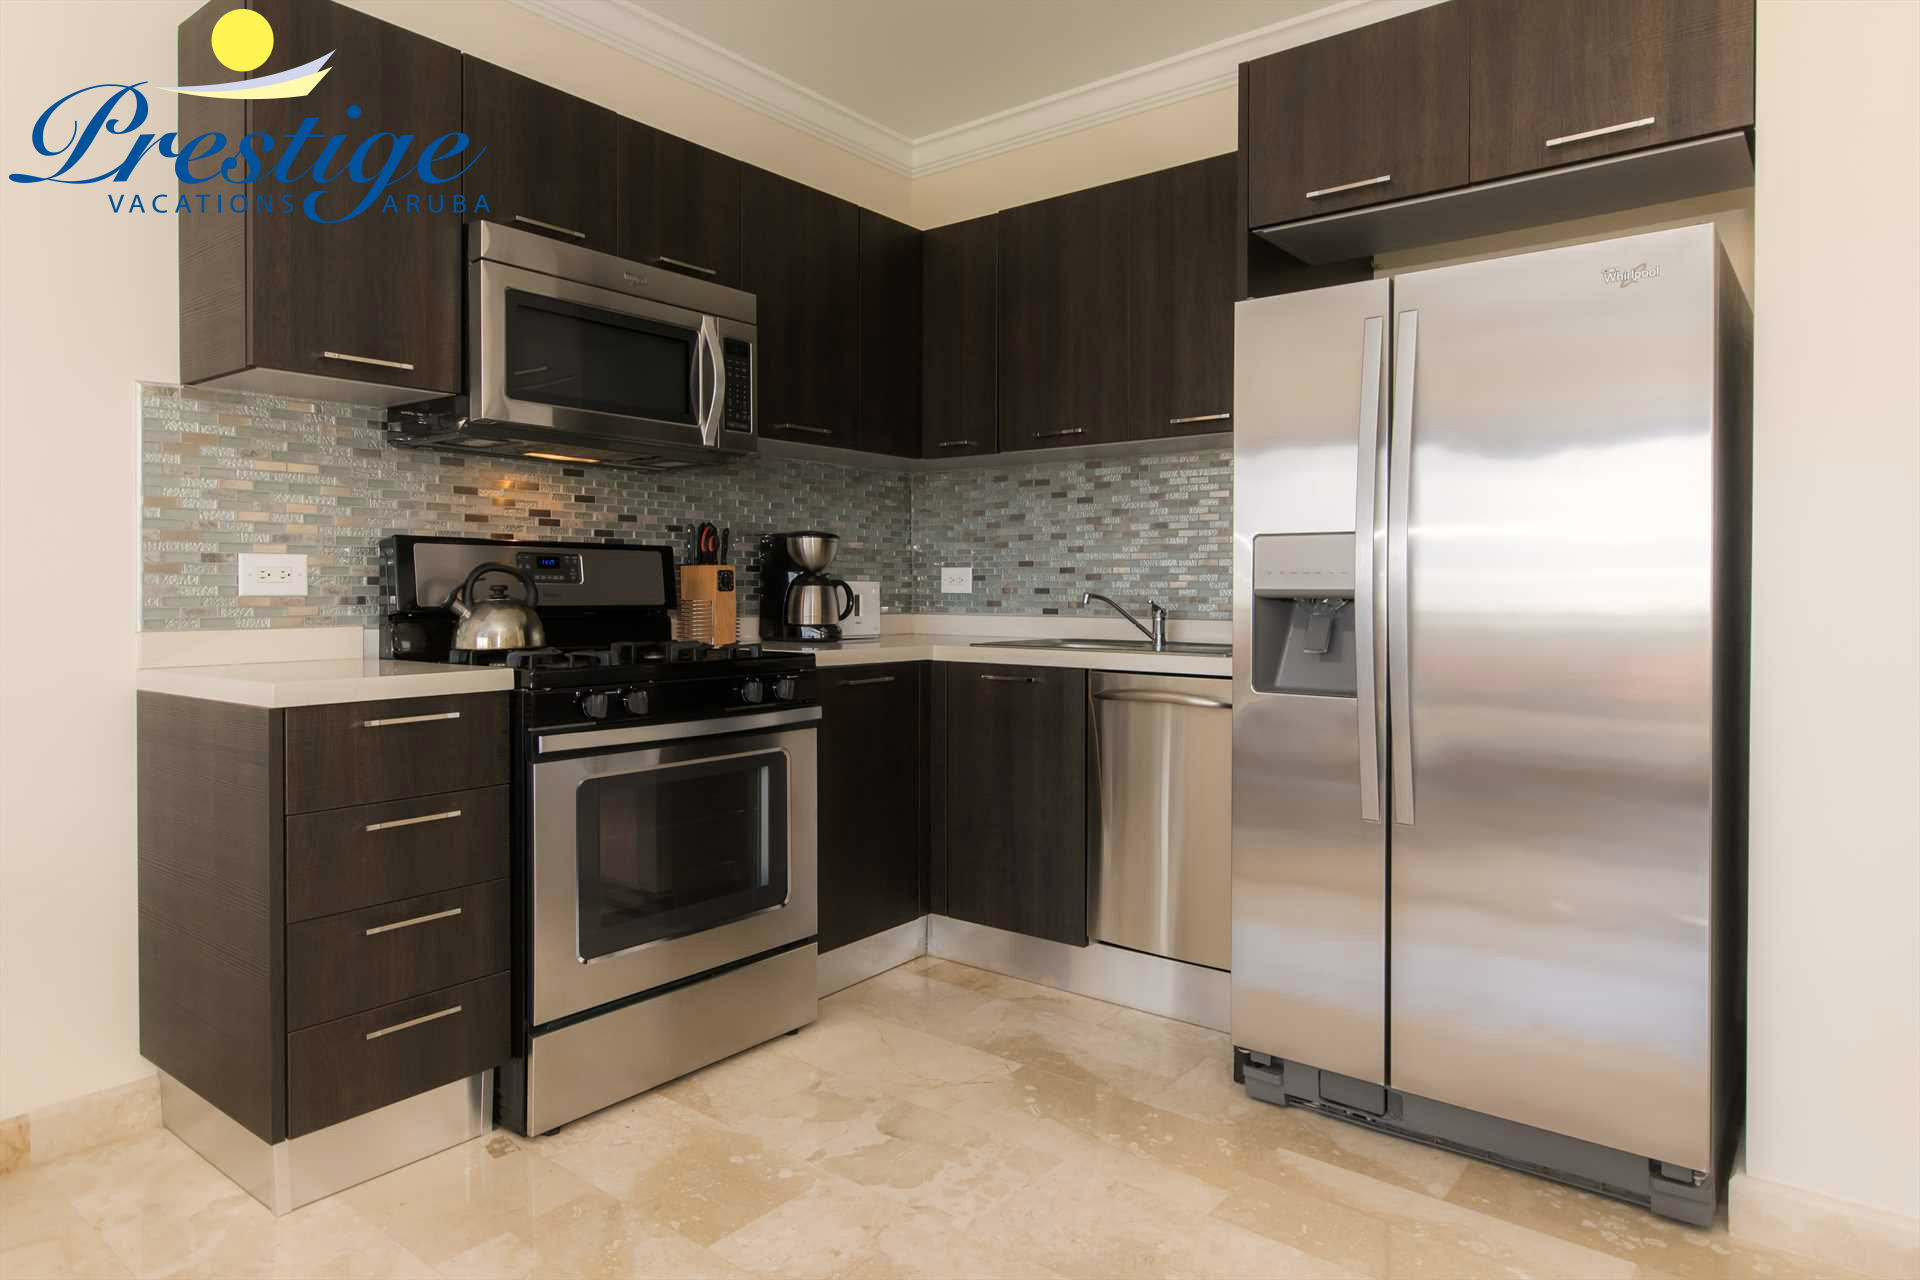 Take advantage of the fully equipped kitchen and prepare delicious meals during your vacation